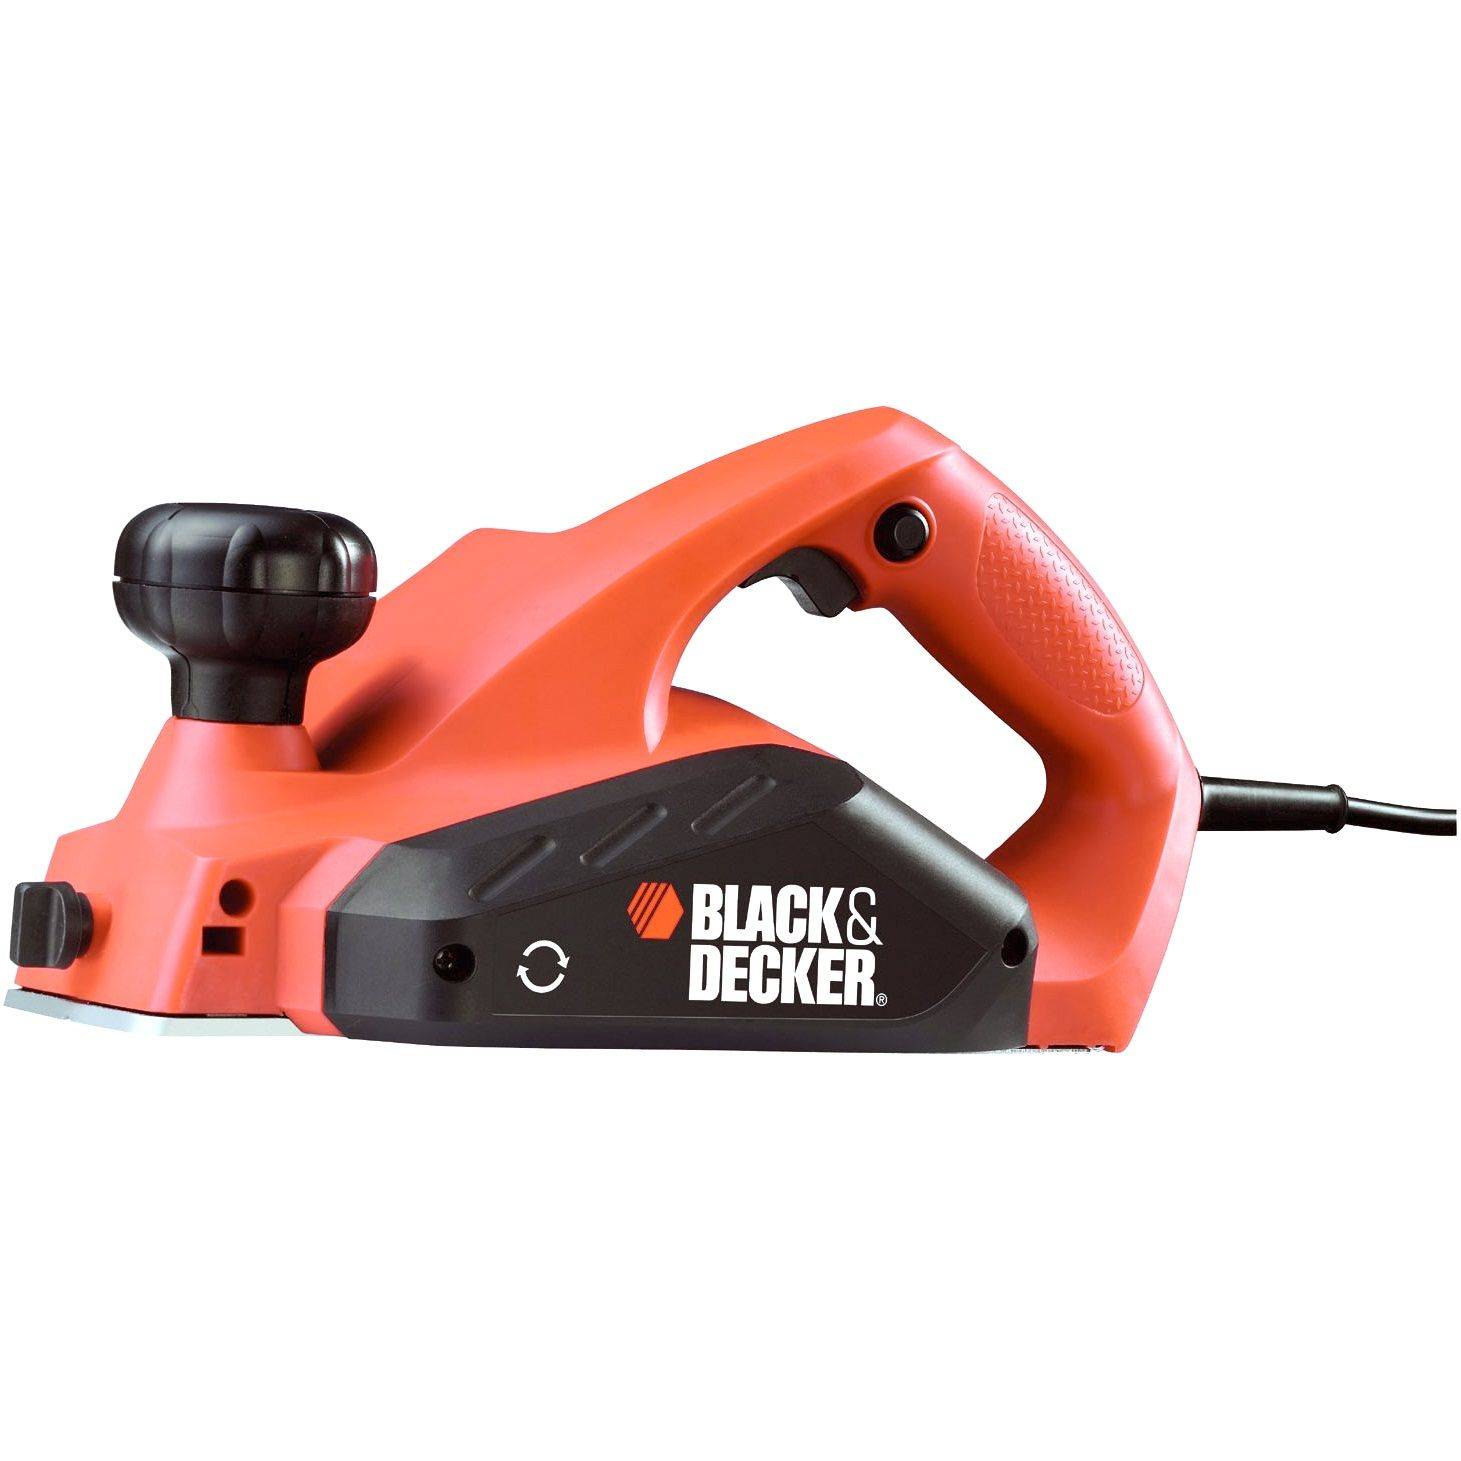 rindea-electrica-650w-black-decker